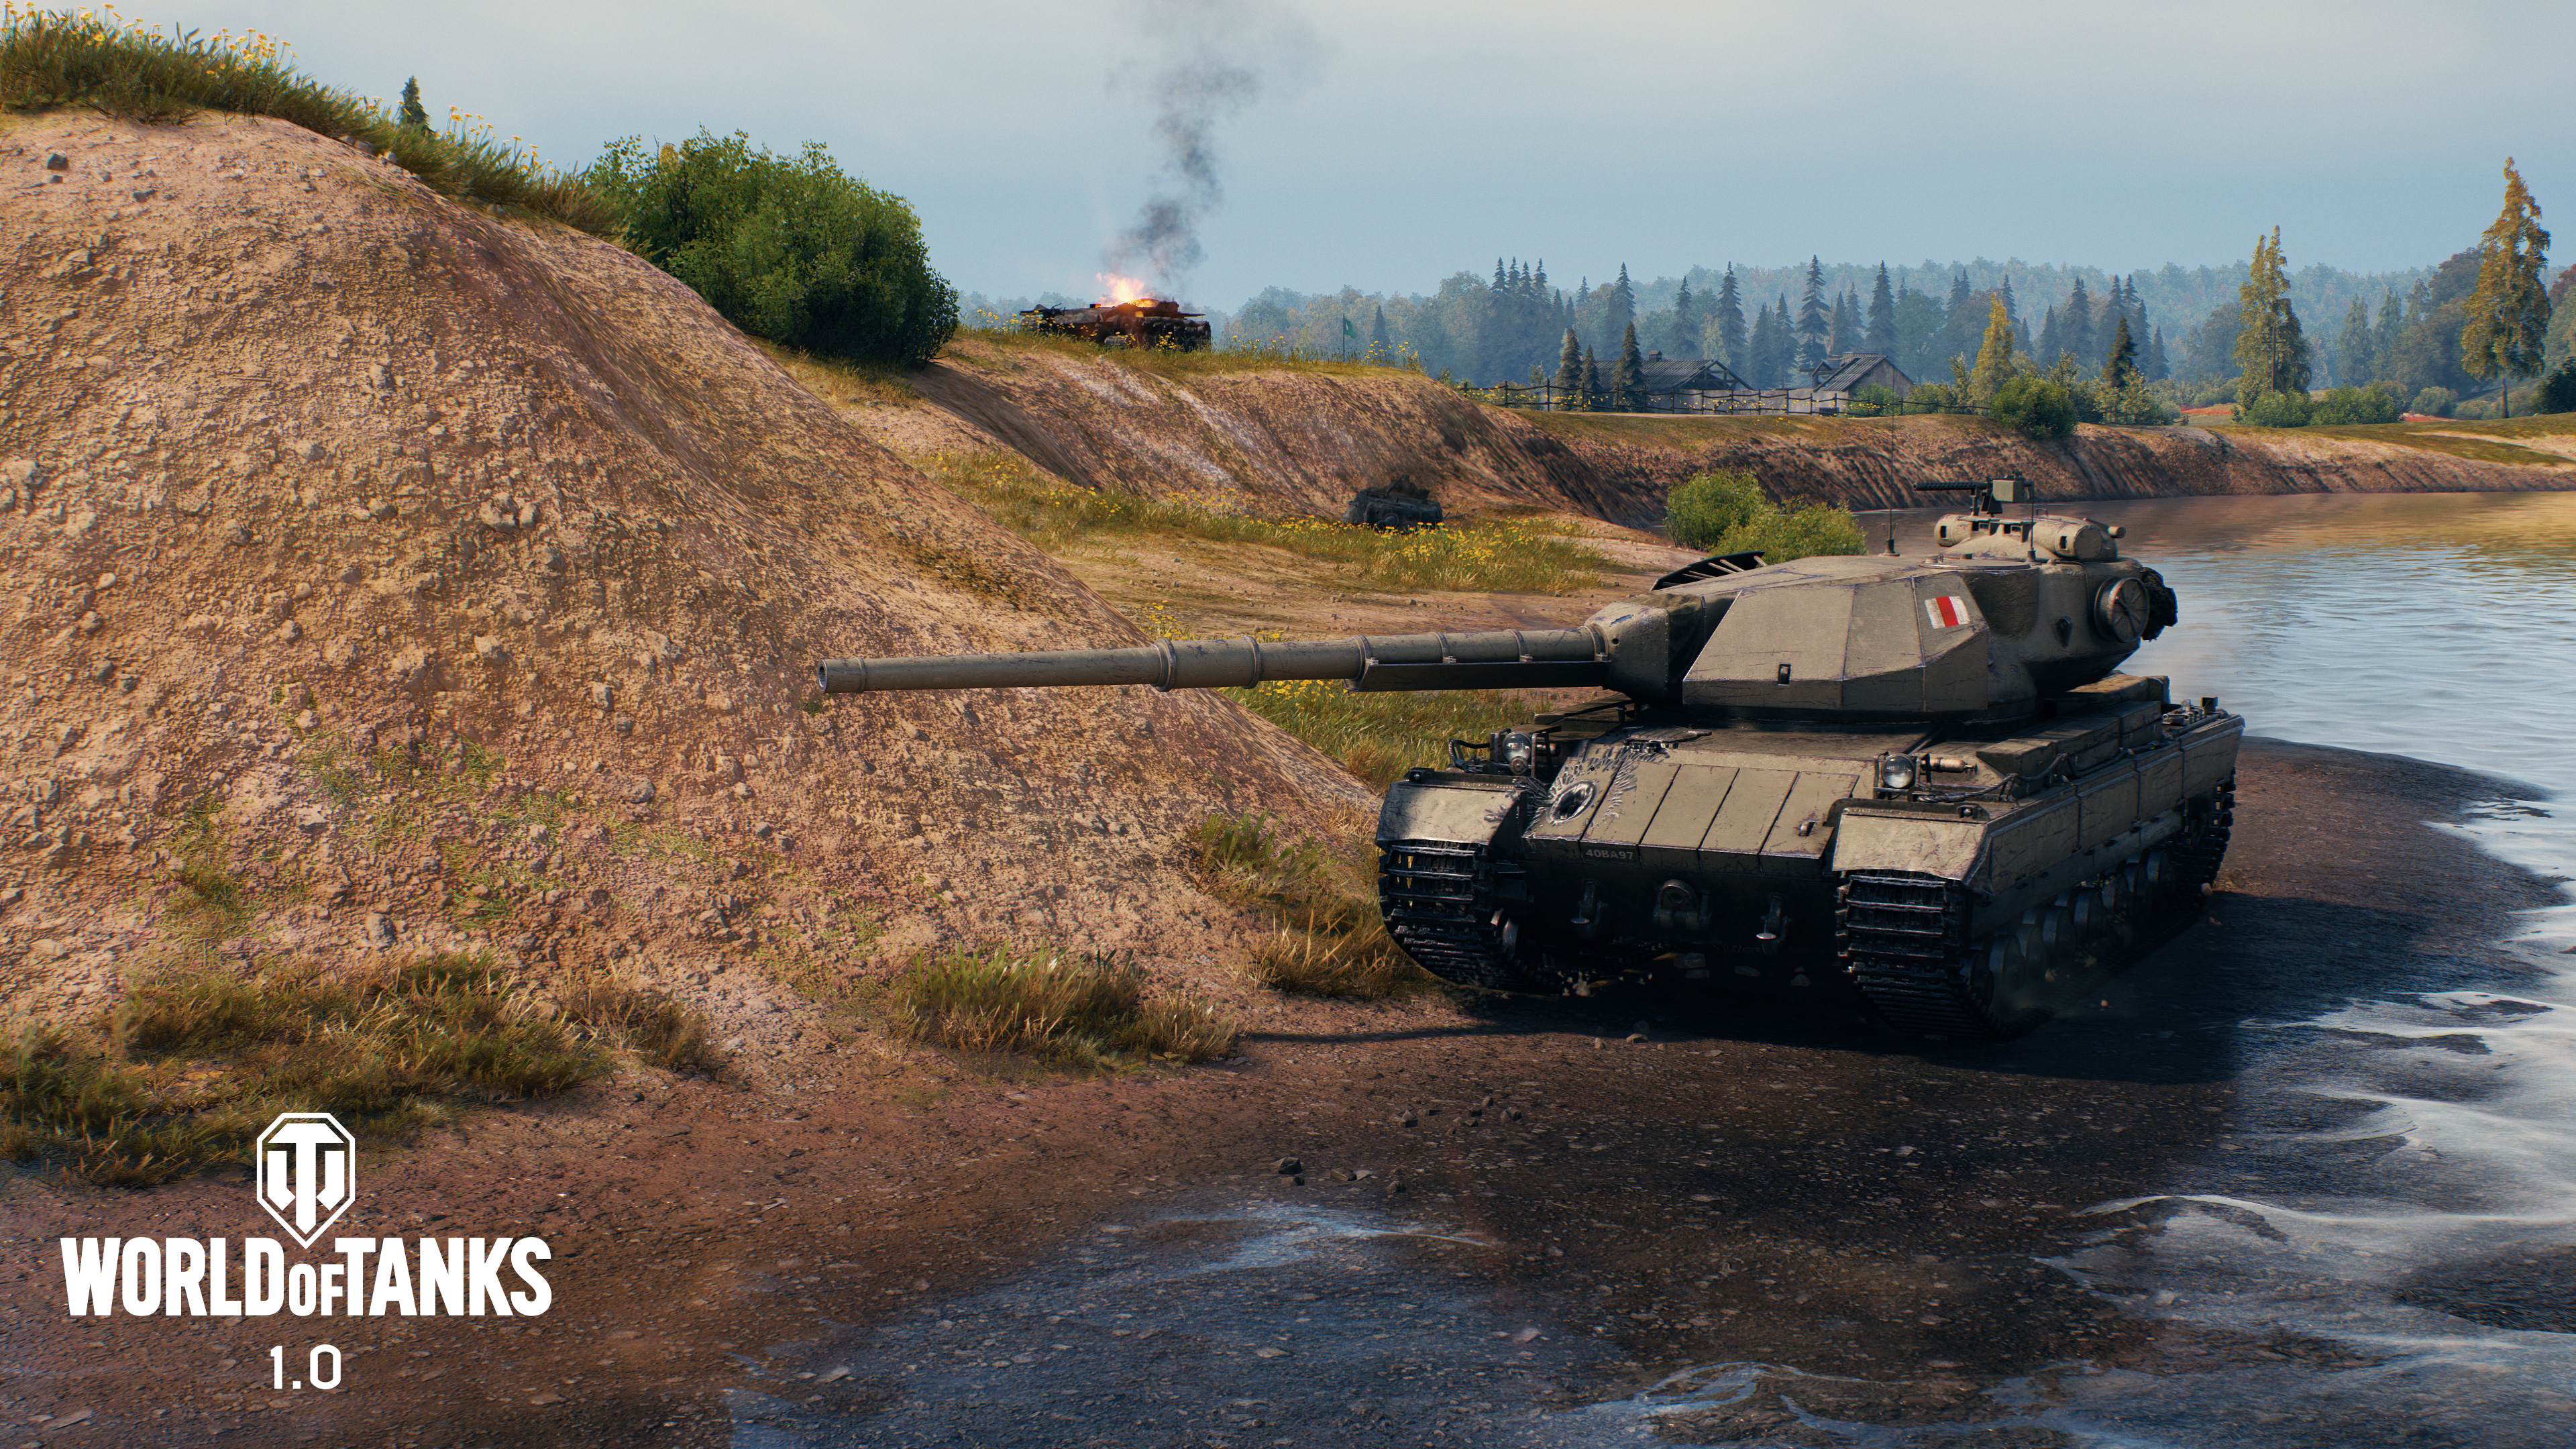 A tank flanks through the water in World of Tanks 1.0